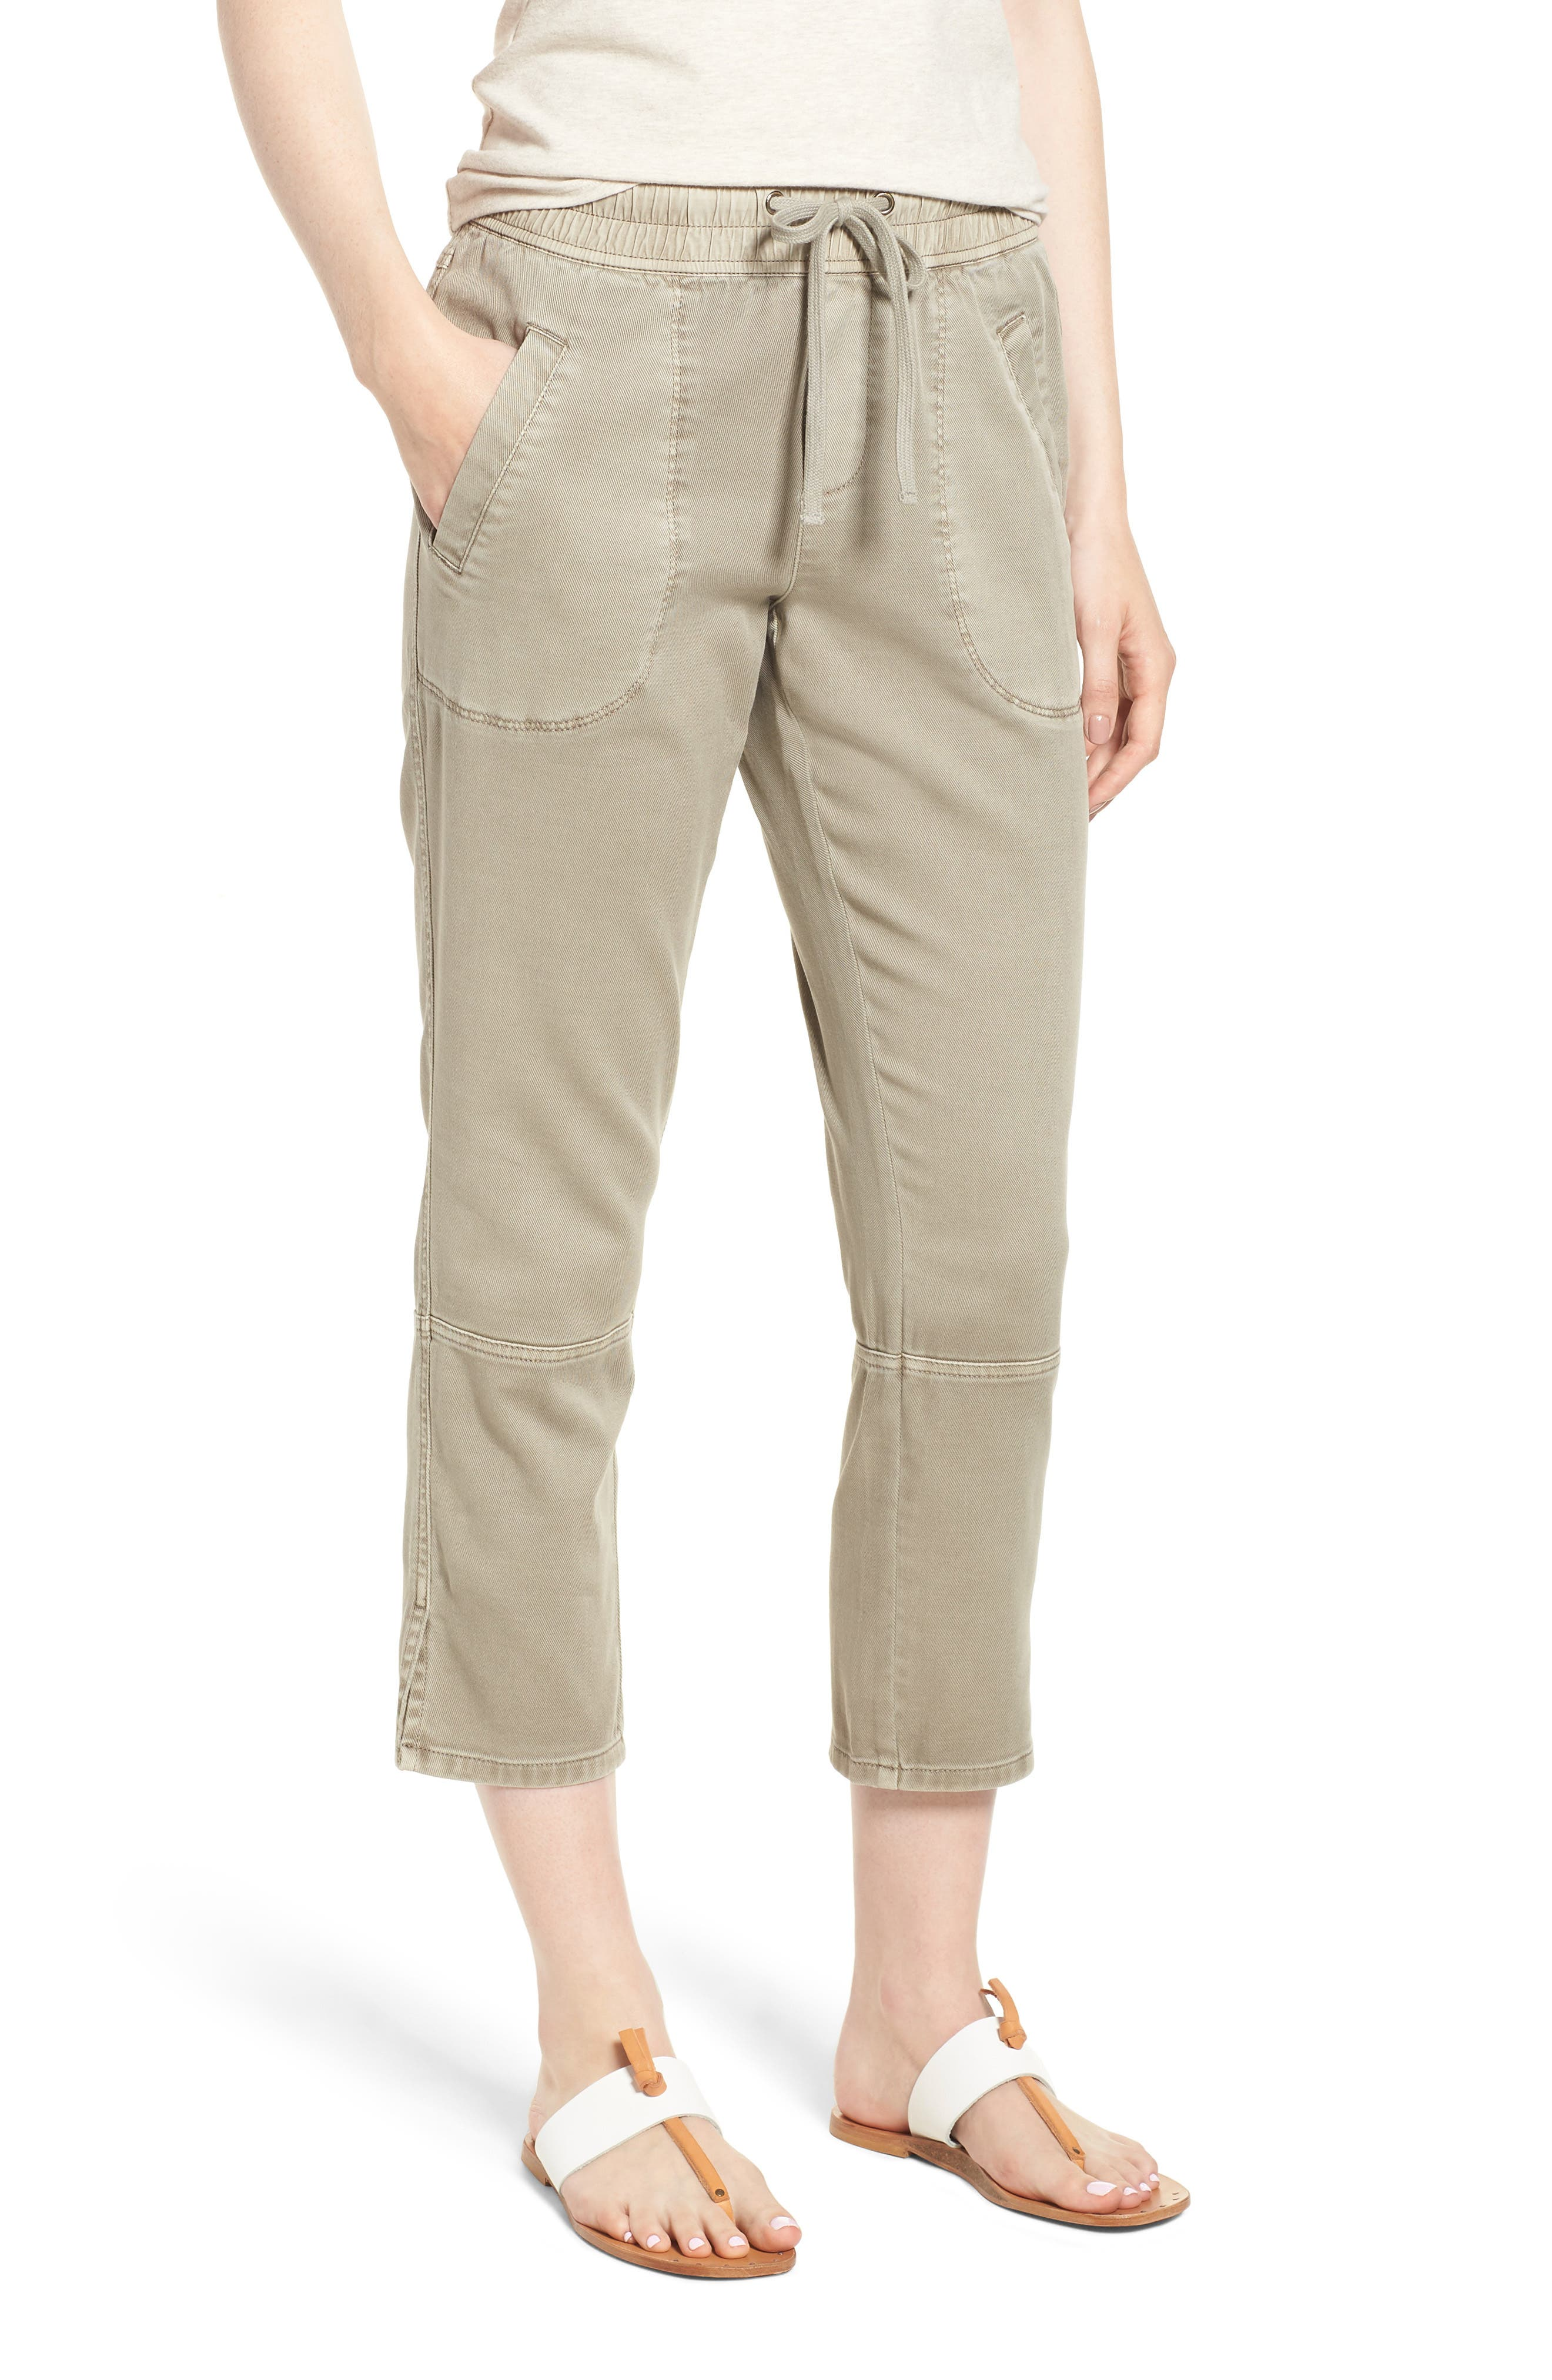 Open Road Ankle Pants,                             Main thumbnail 1, color,                             FLAX